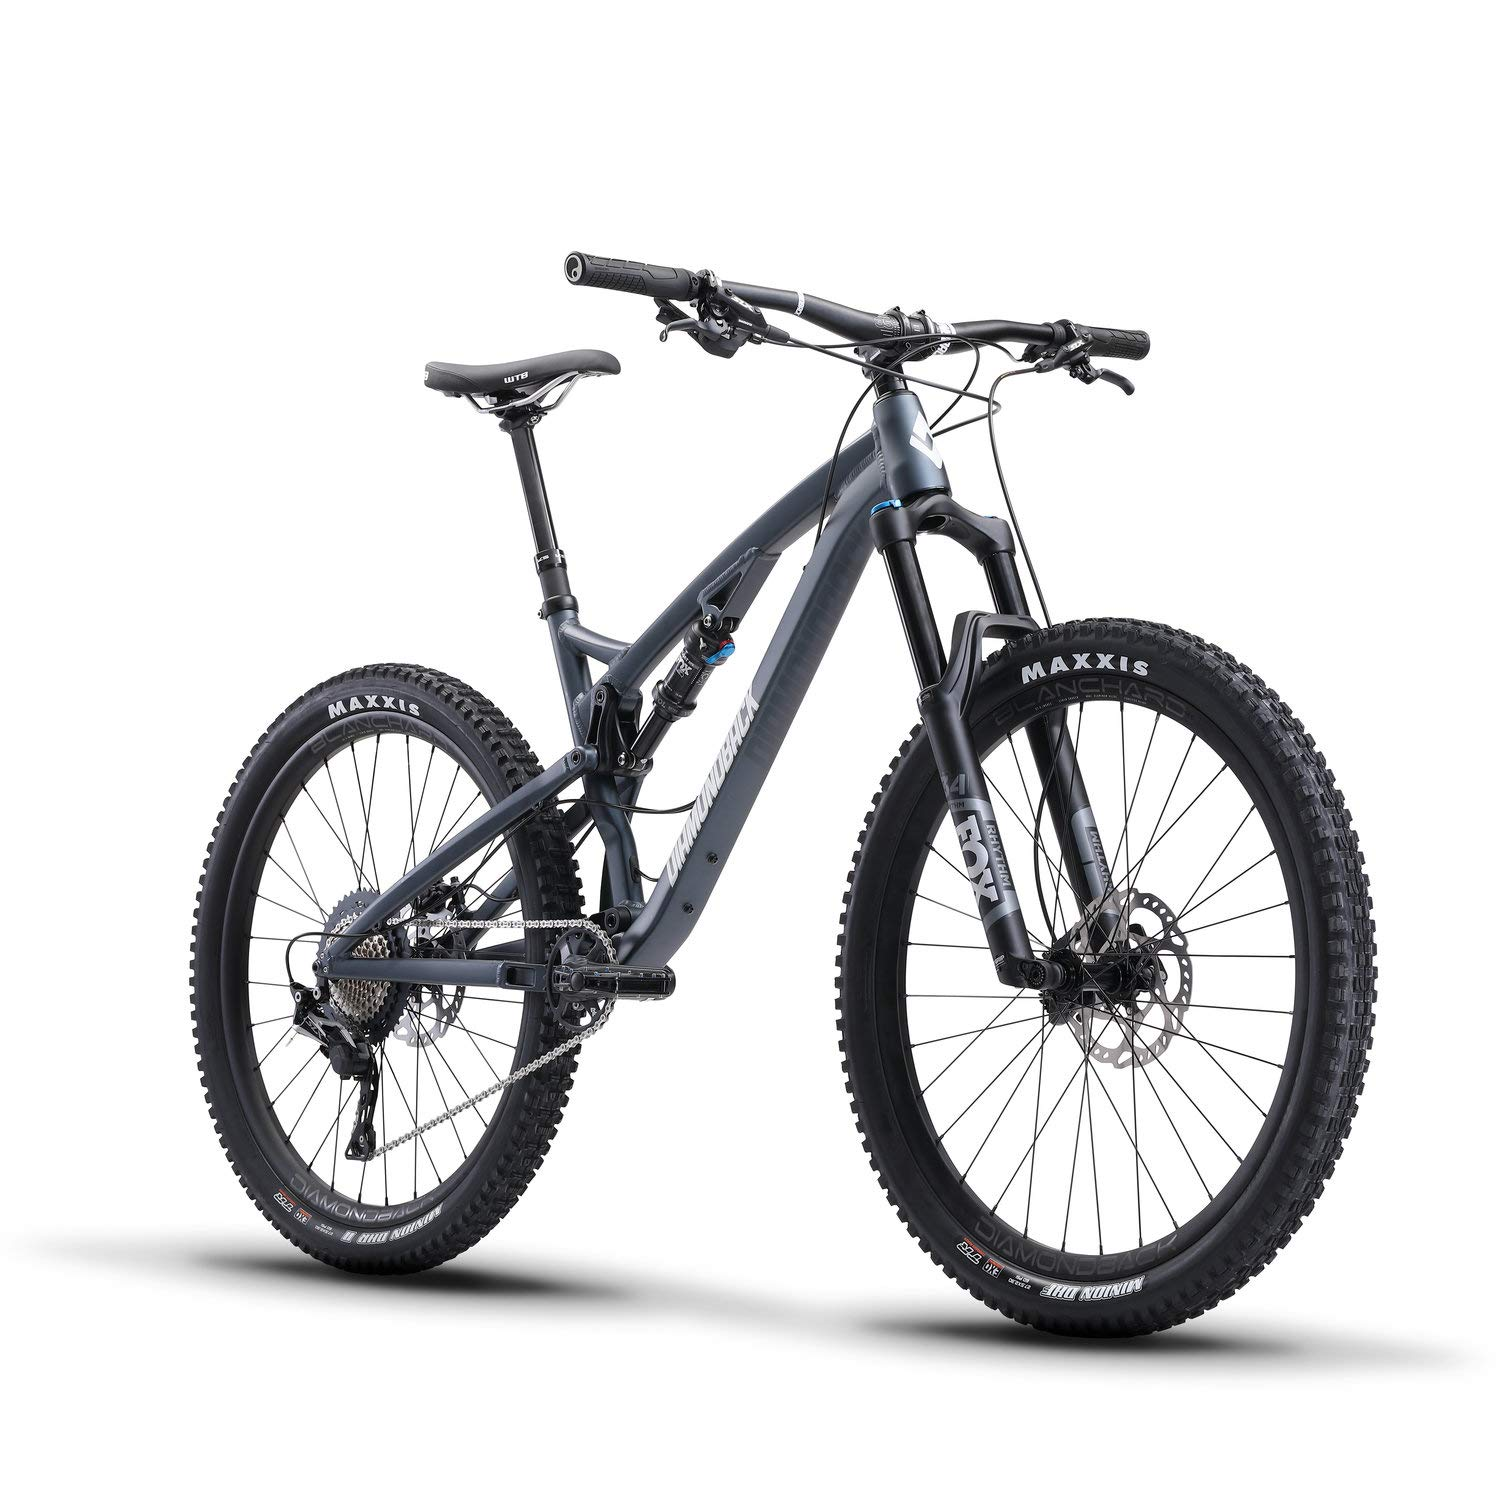 3259542a1d4 Amazon.com : Release 2 Full Suspension Mountain Bike, Blue, 19/LG : Sports  & Outdoors